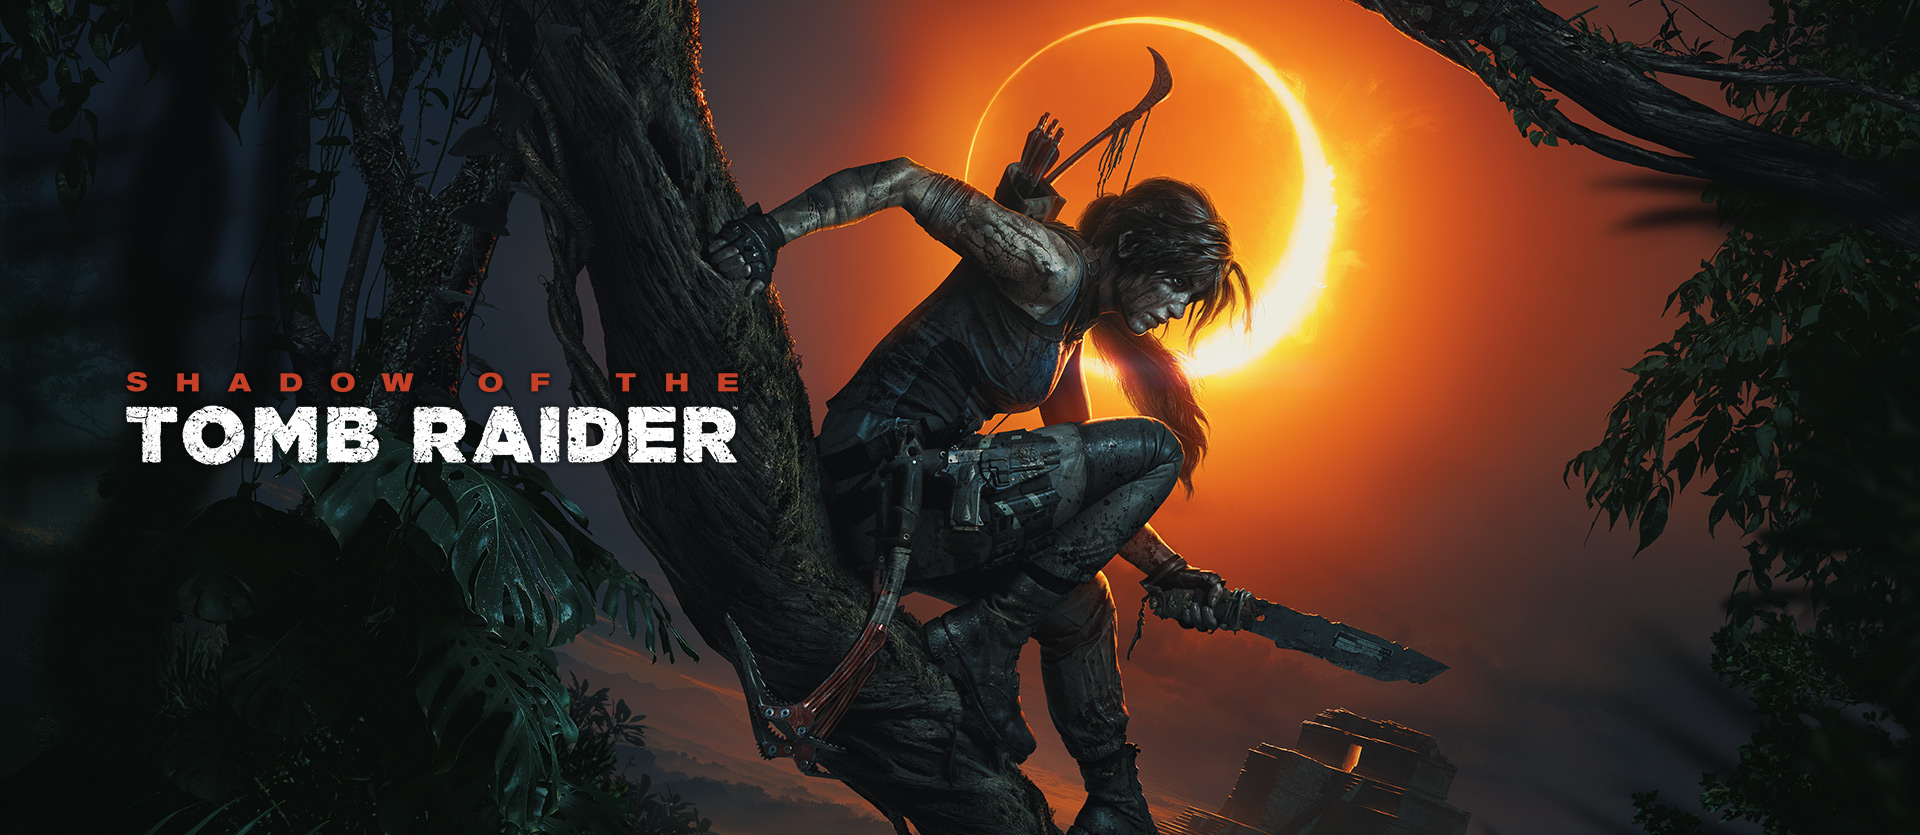 ¿Crystal Dynamics intenta sepultar a Tomb Raider?